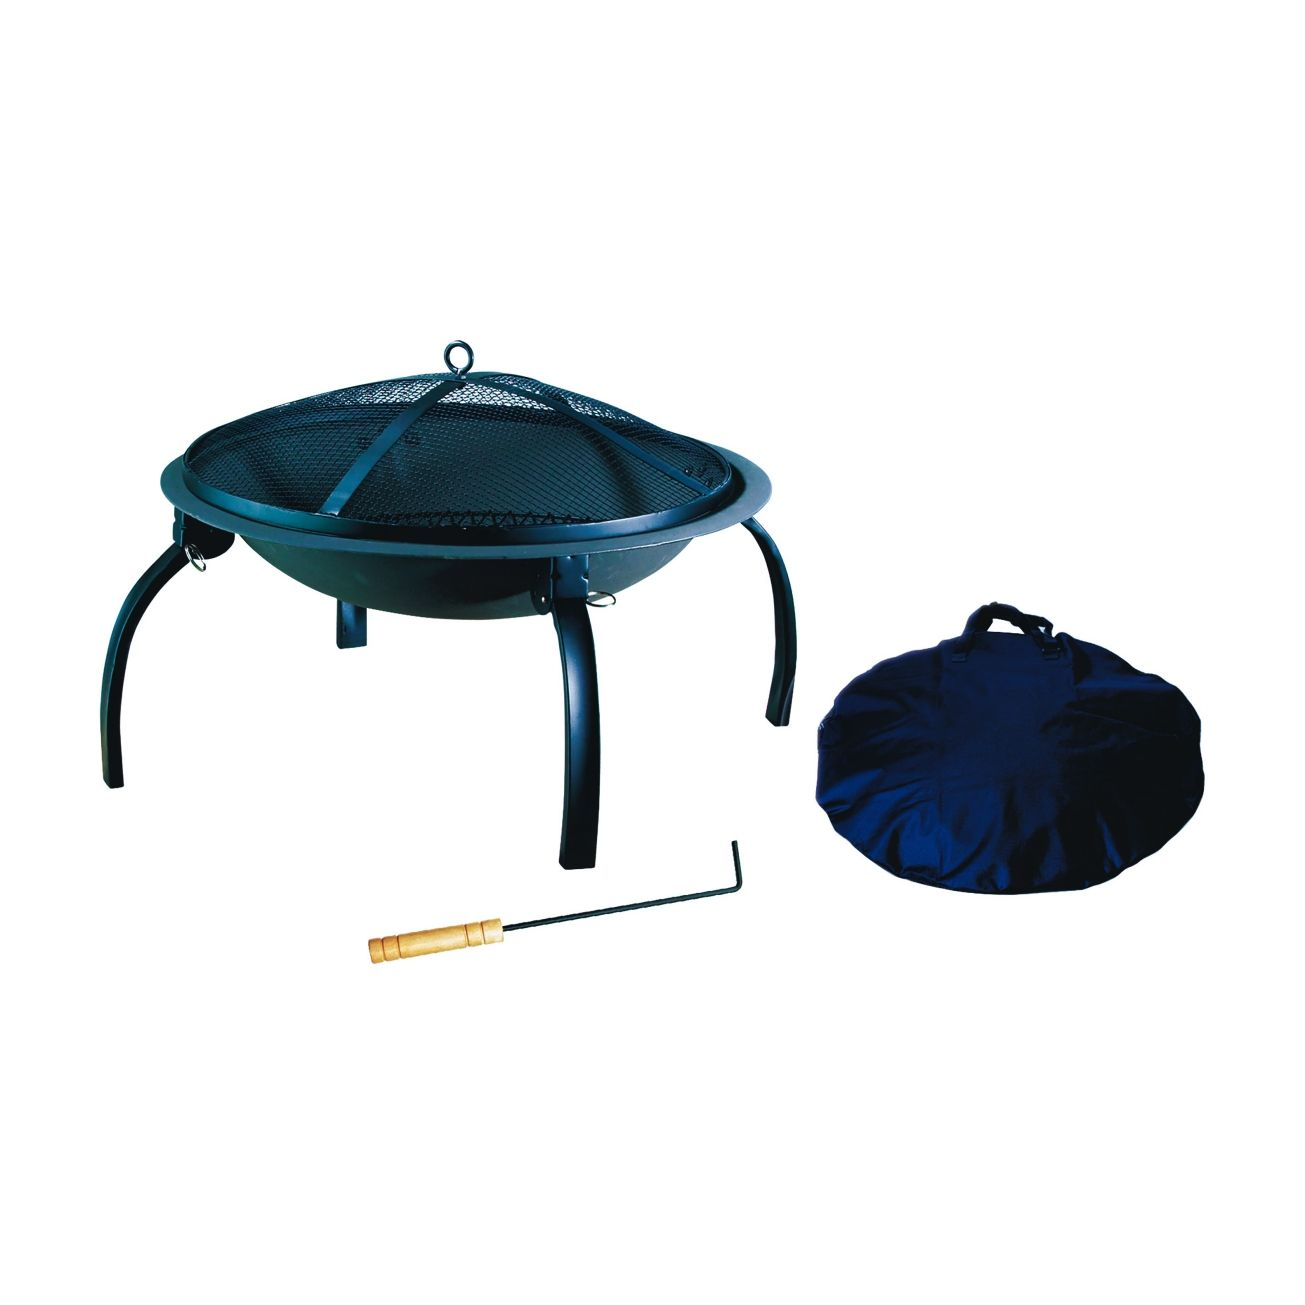 Living Accents Portable Fire Pit - Outdoor Fireplaces ... on Ace Hardware Fire Pit id=19297